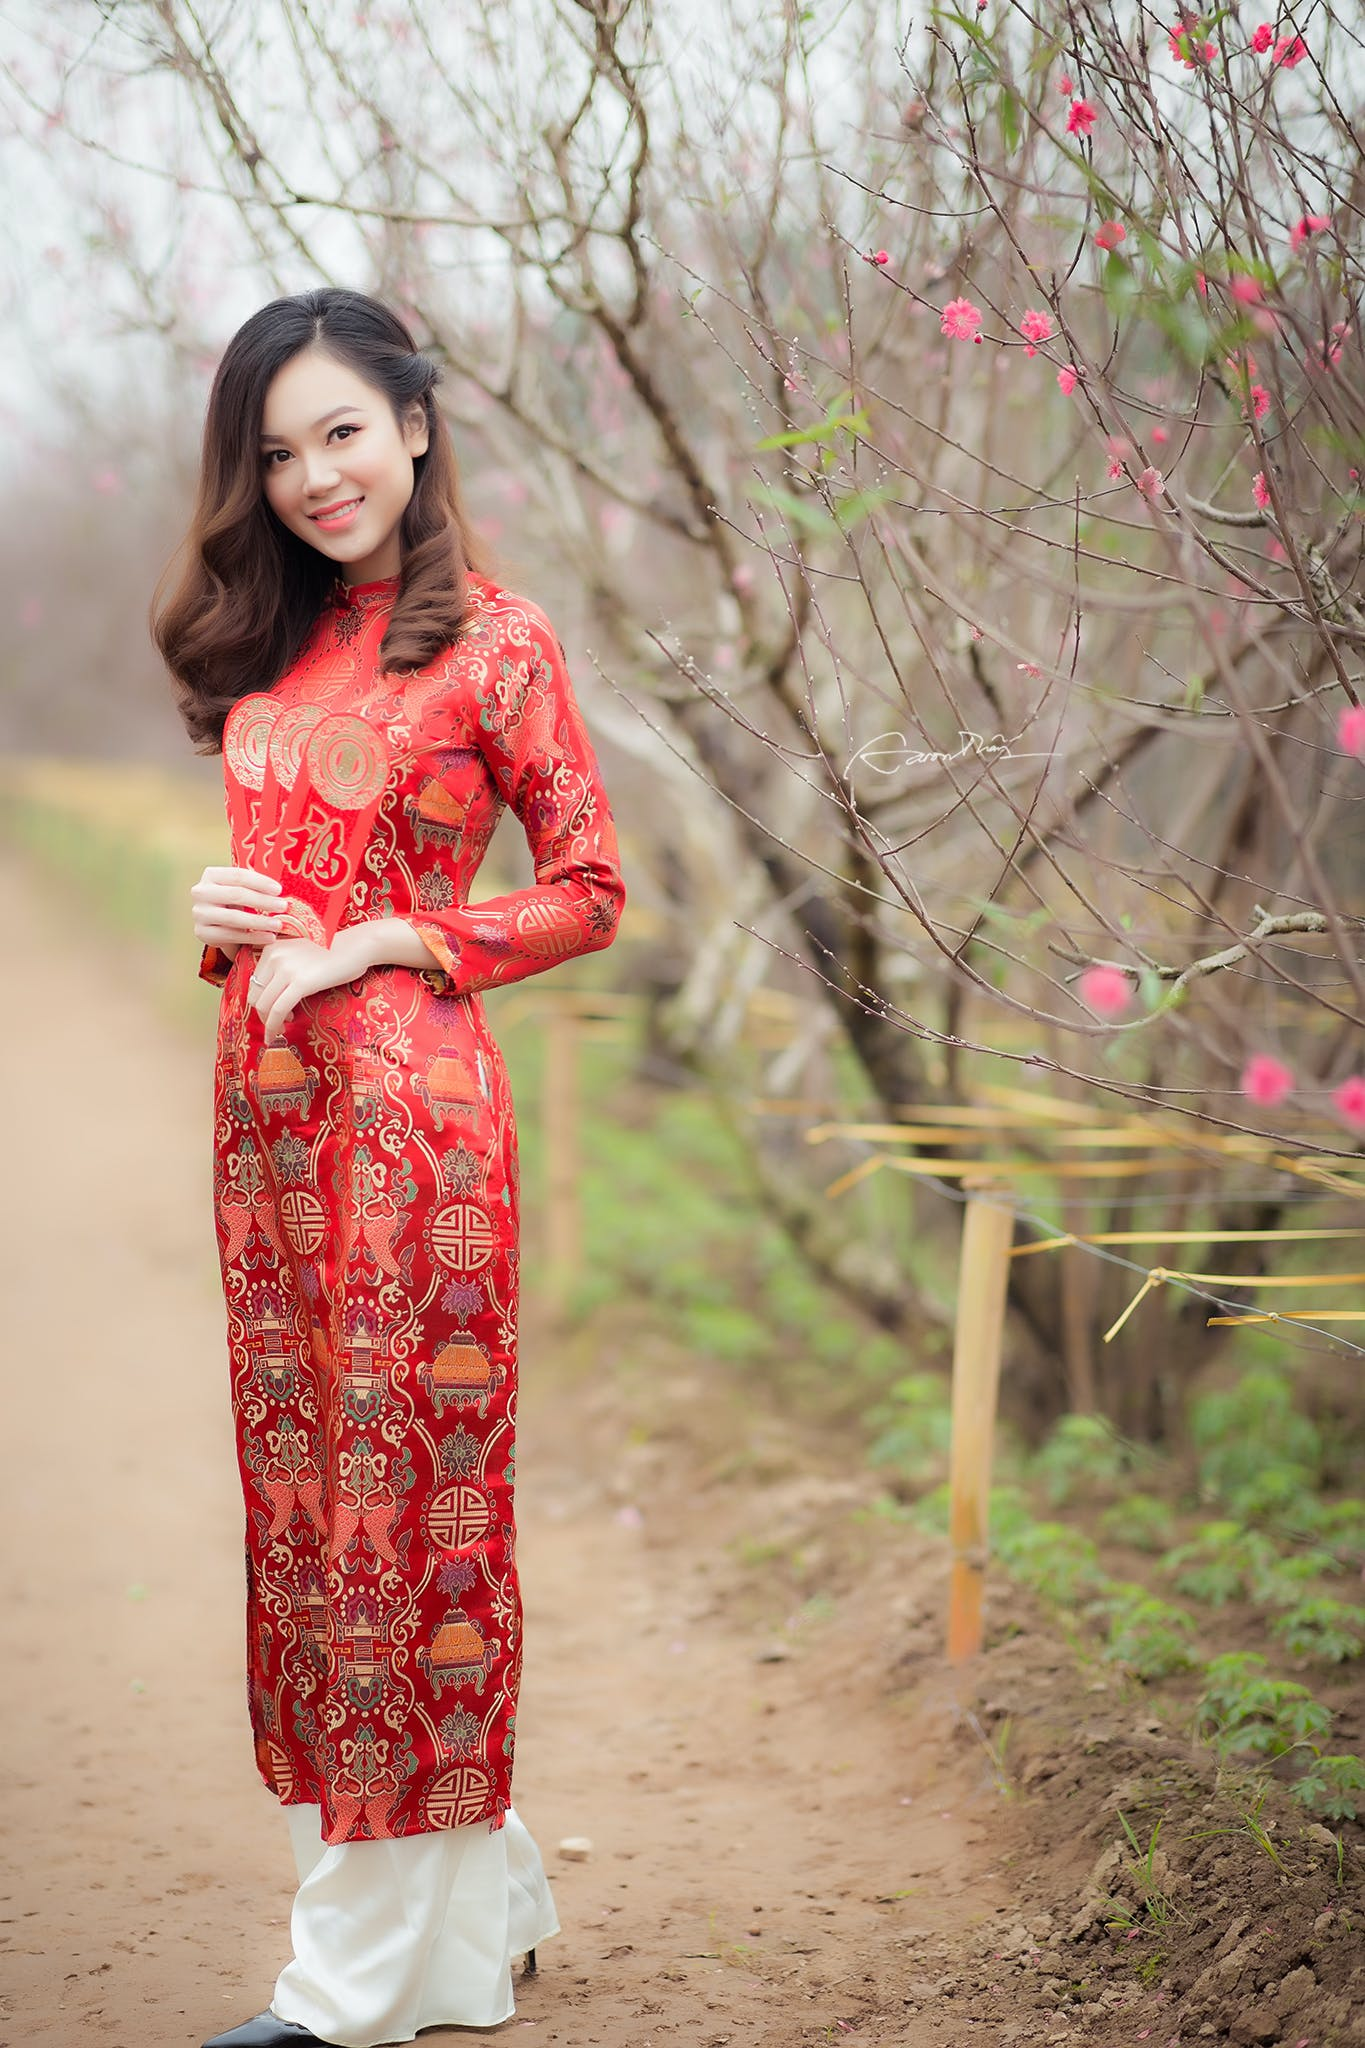 Woman in Red Crew-neck Long-sleeved Dress Near Bare Tree